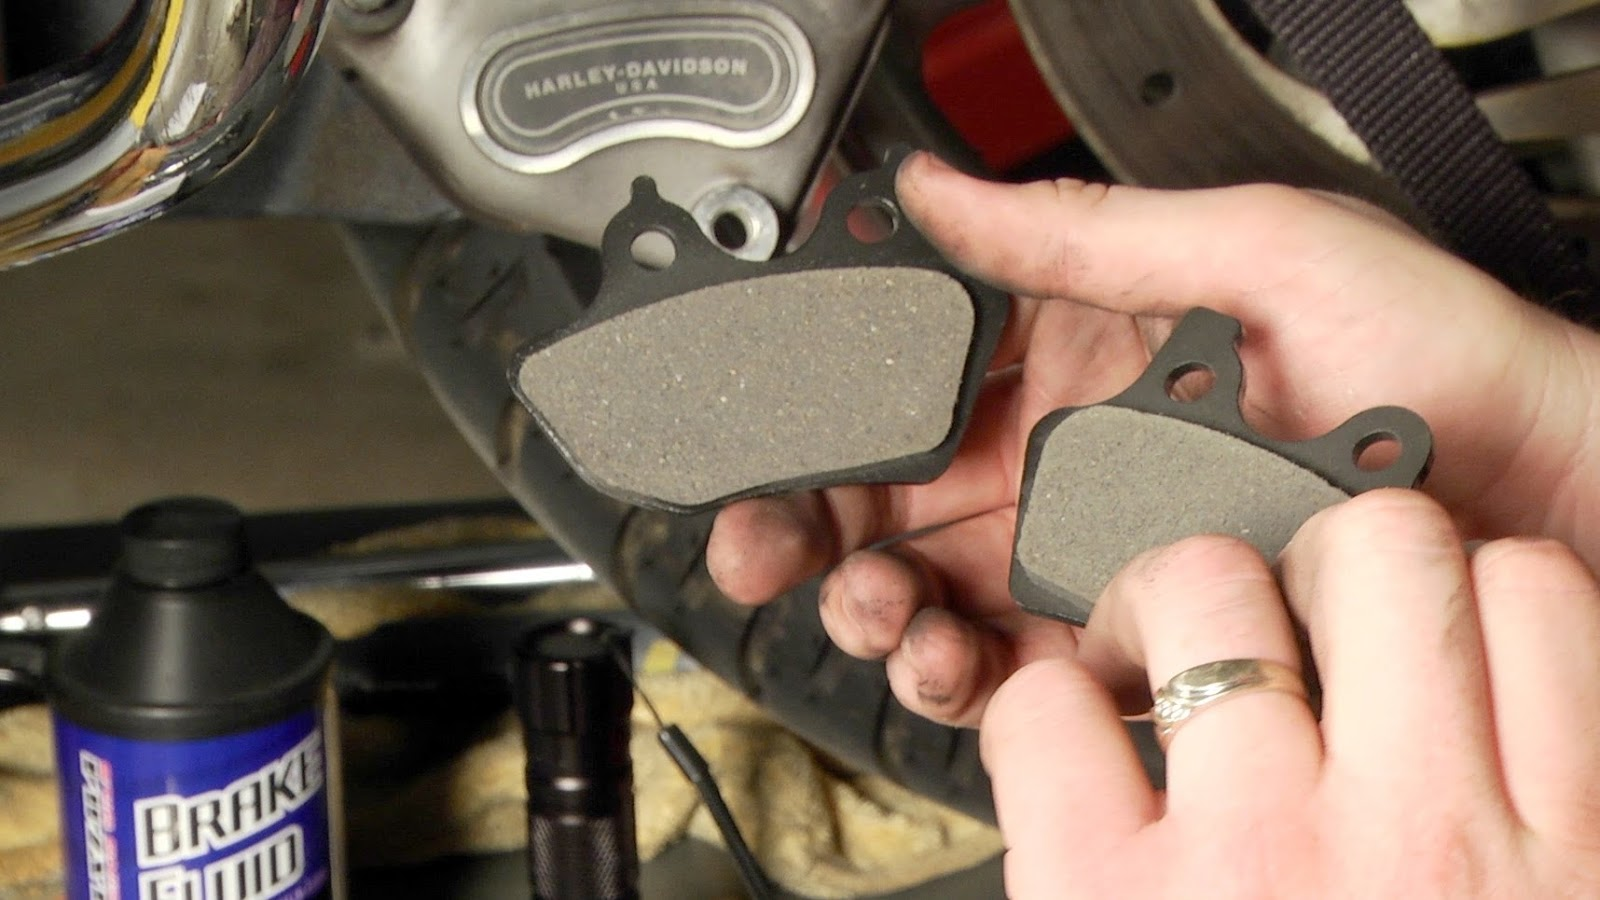 New Sintered Brake Pads Making Grinding Noise: Causes and